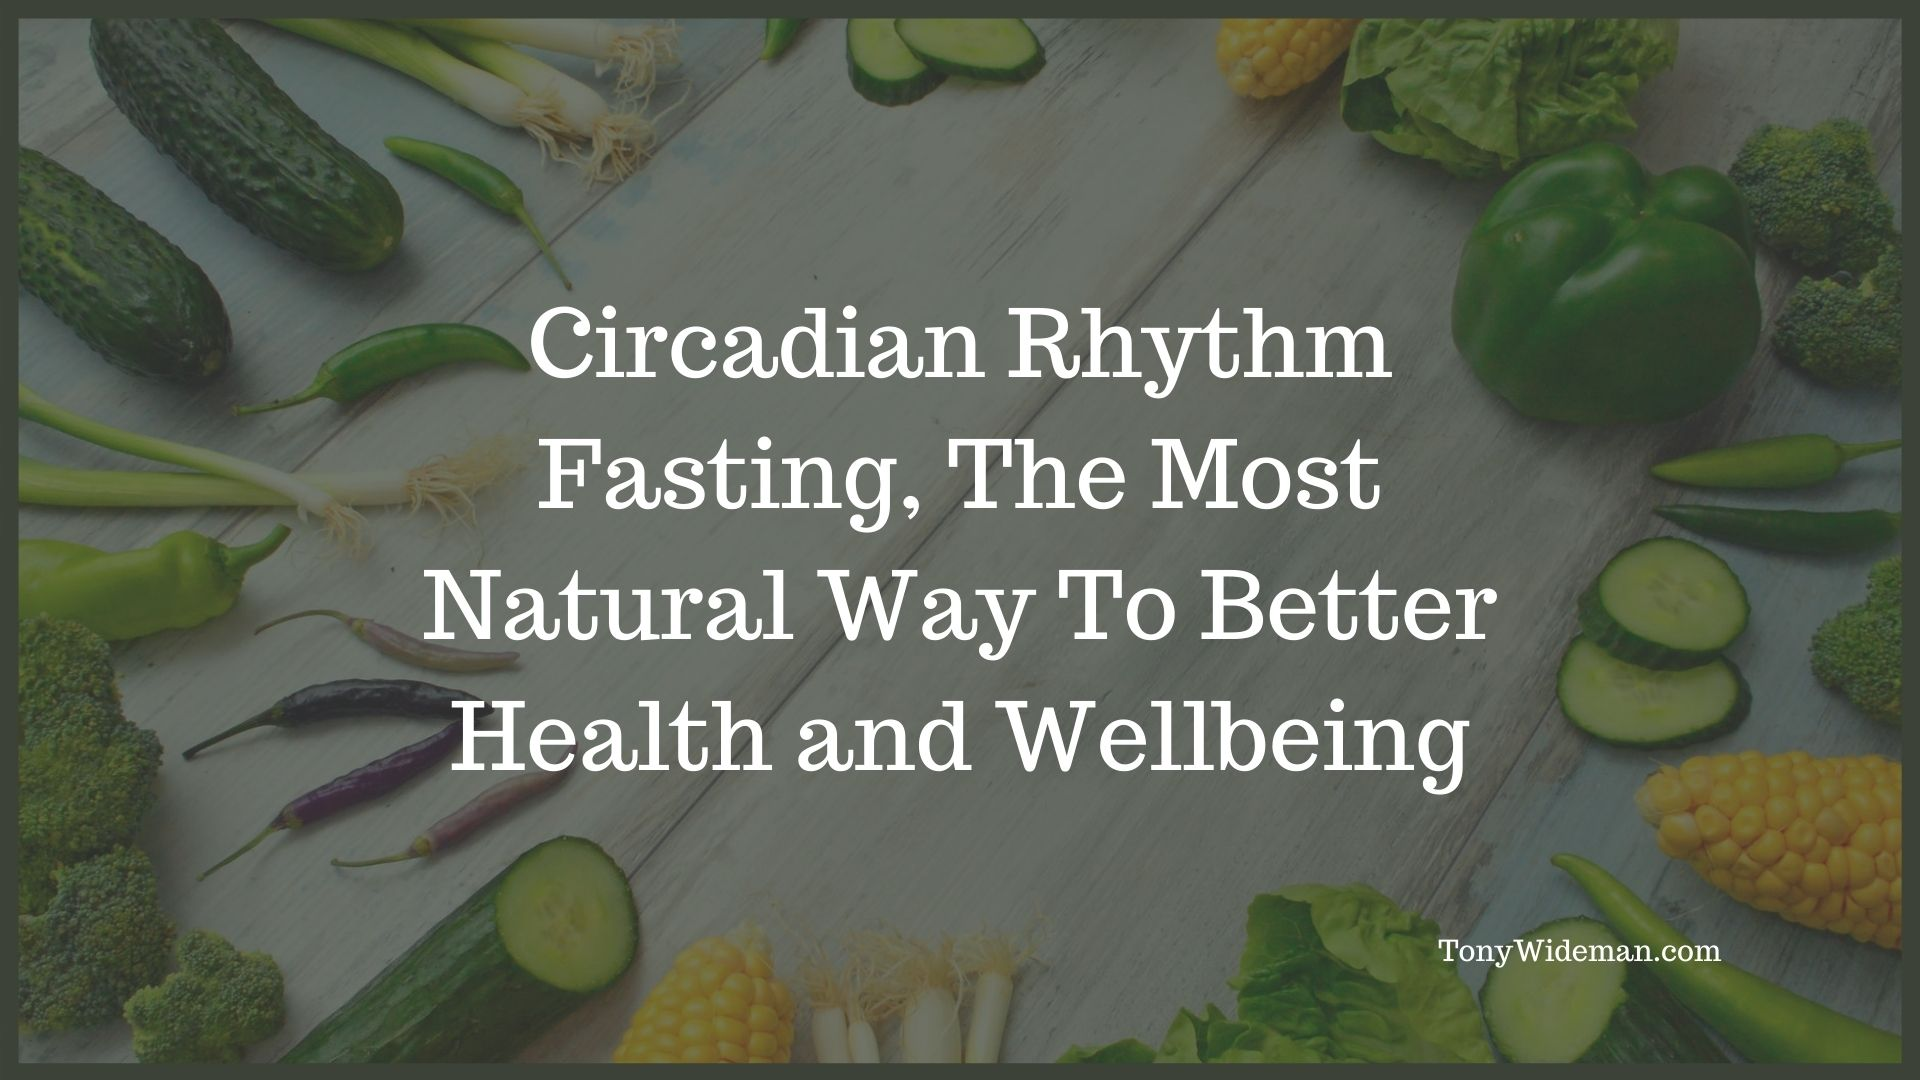 Circadian Rhythm Fasting, The 6 Benefits To Better Health and Wellbeing